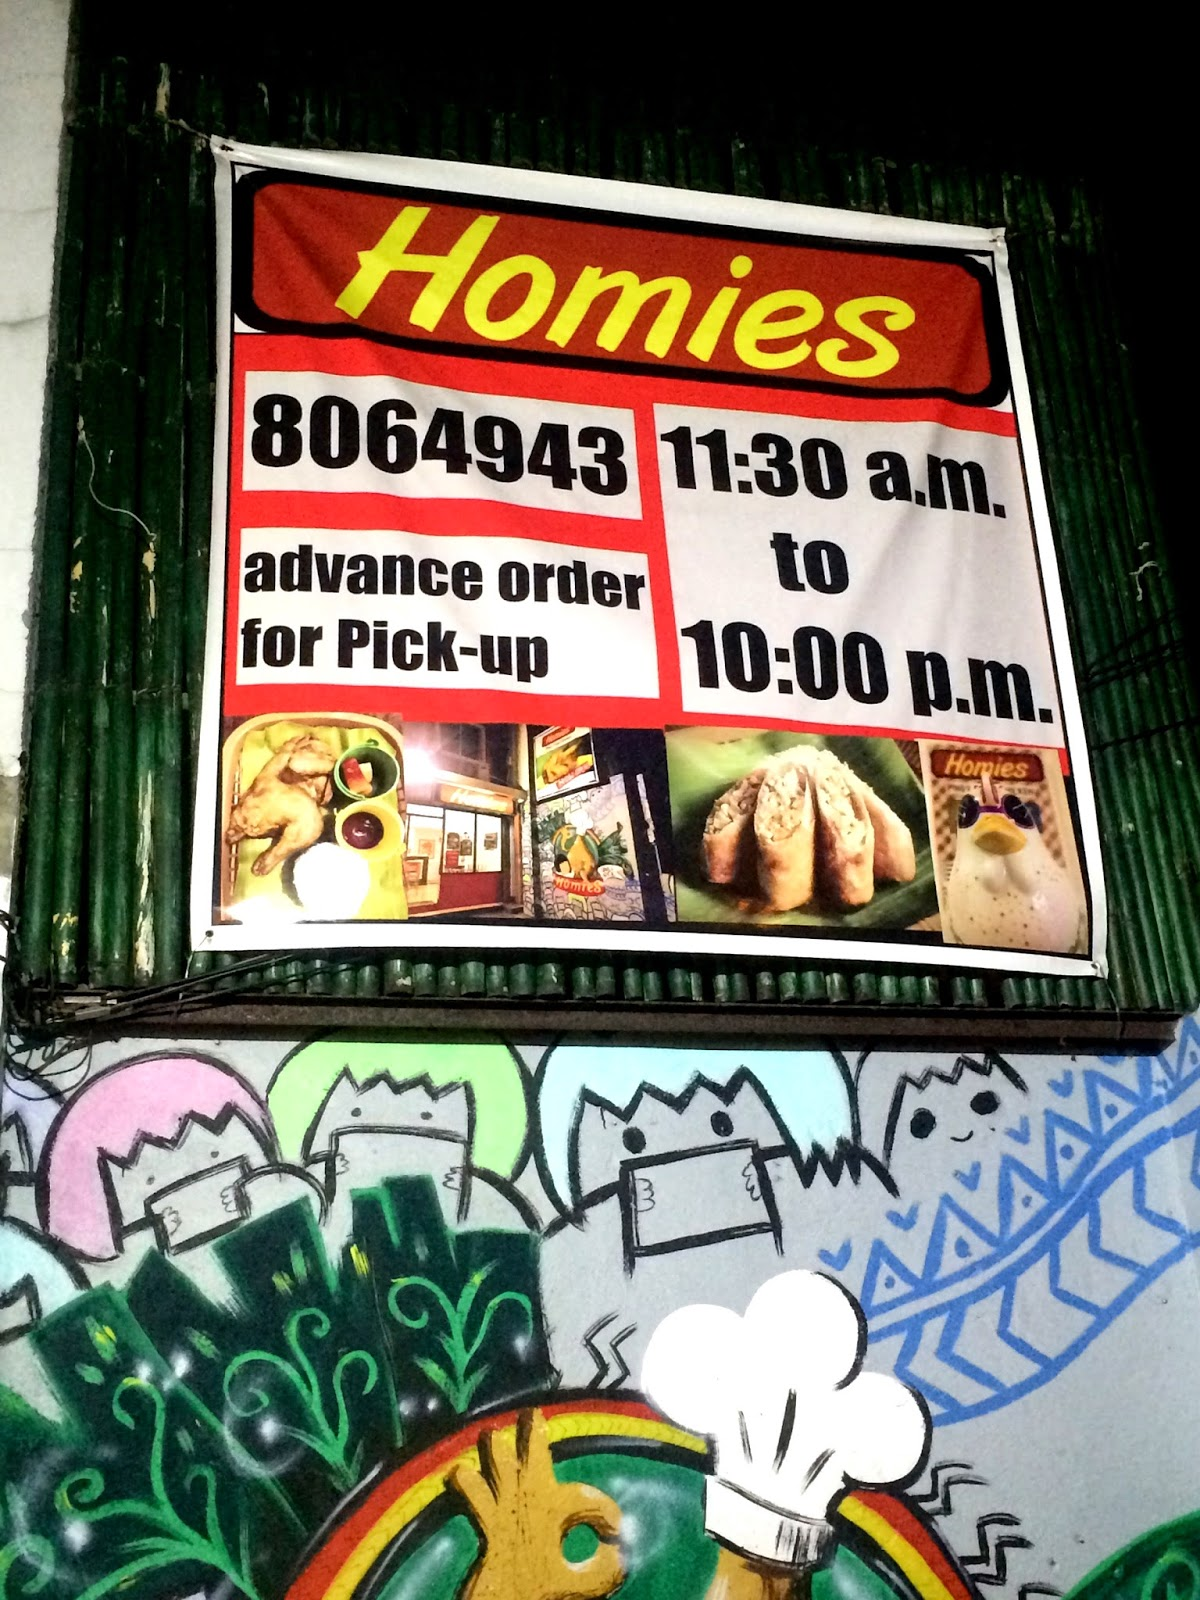 Nines vs. Food - Homies Pinoy Fried Chicken-5.jpg